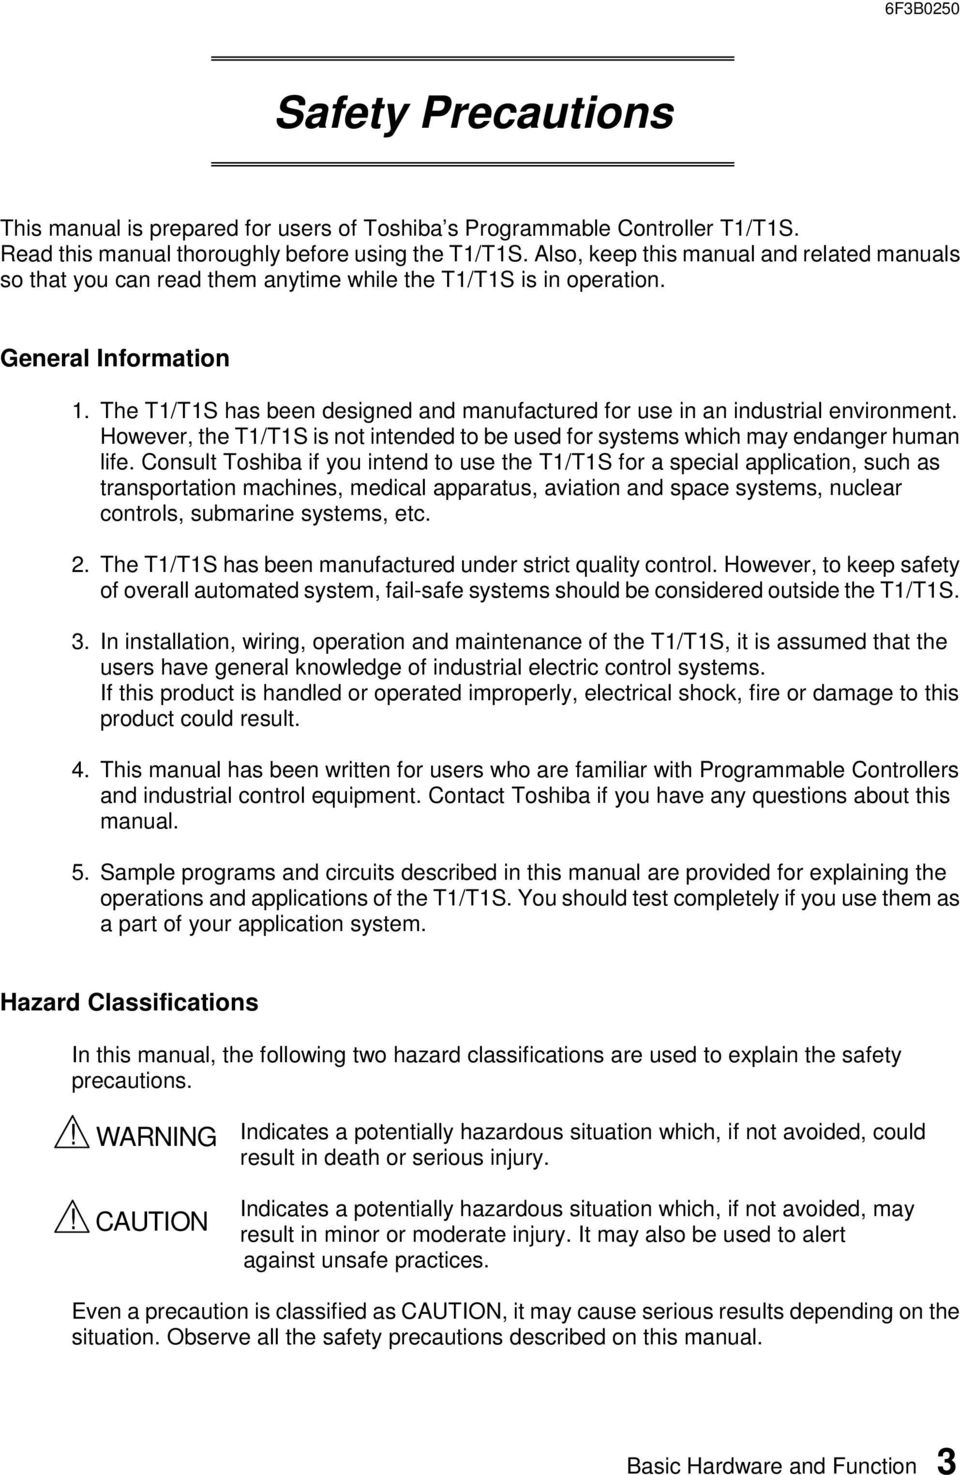 User S Manual Basic Hardware And Function Pdf Toshiba G7 Wiring Diagram The T1 T1s Has Been Designed Manufactured For Use In An Industrial Environment